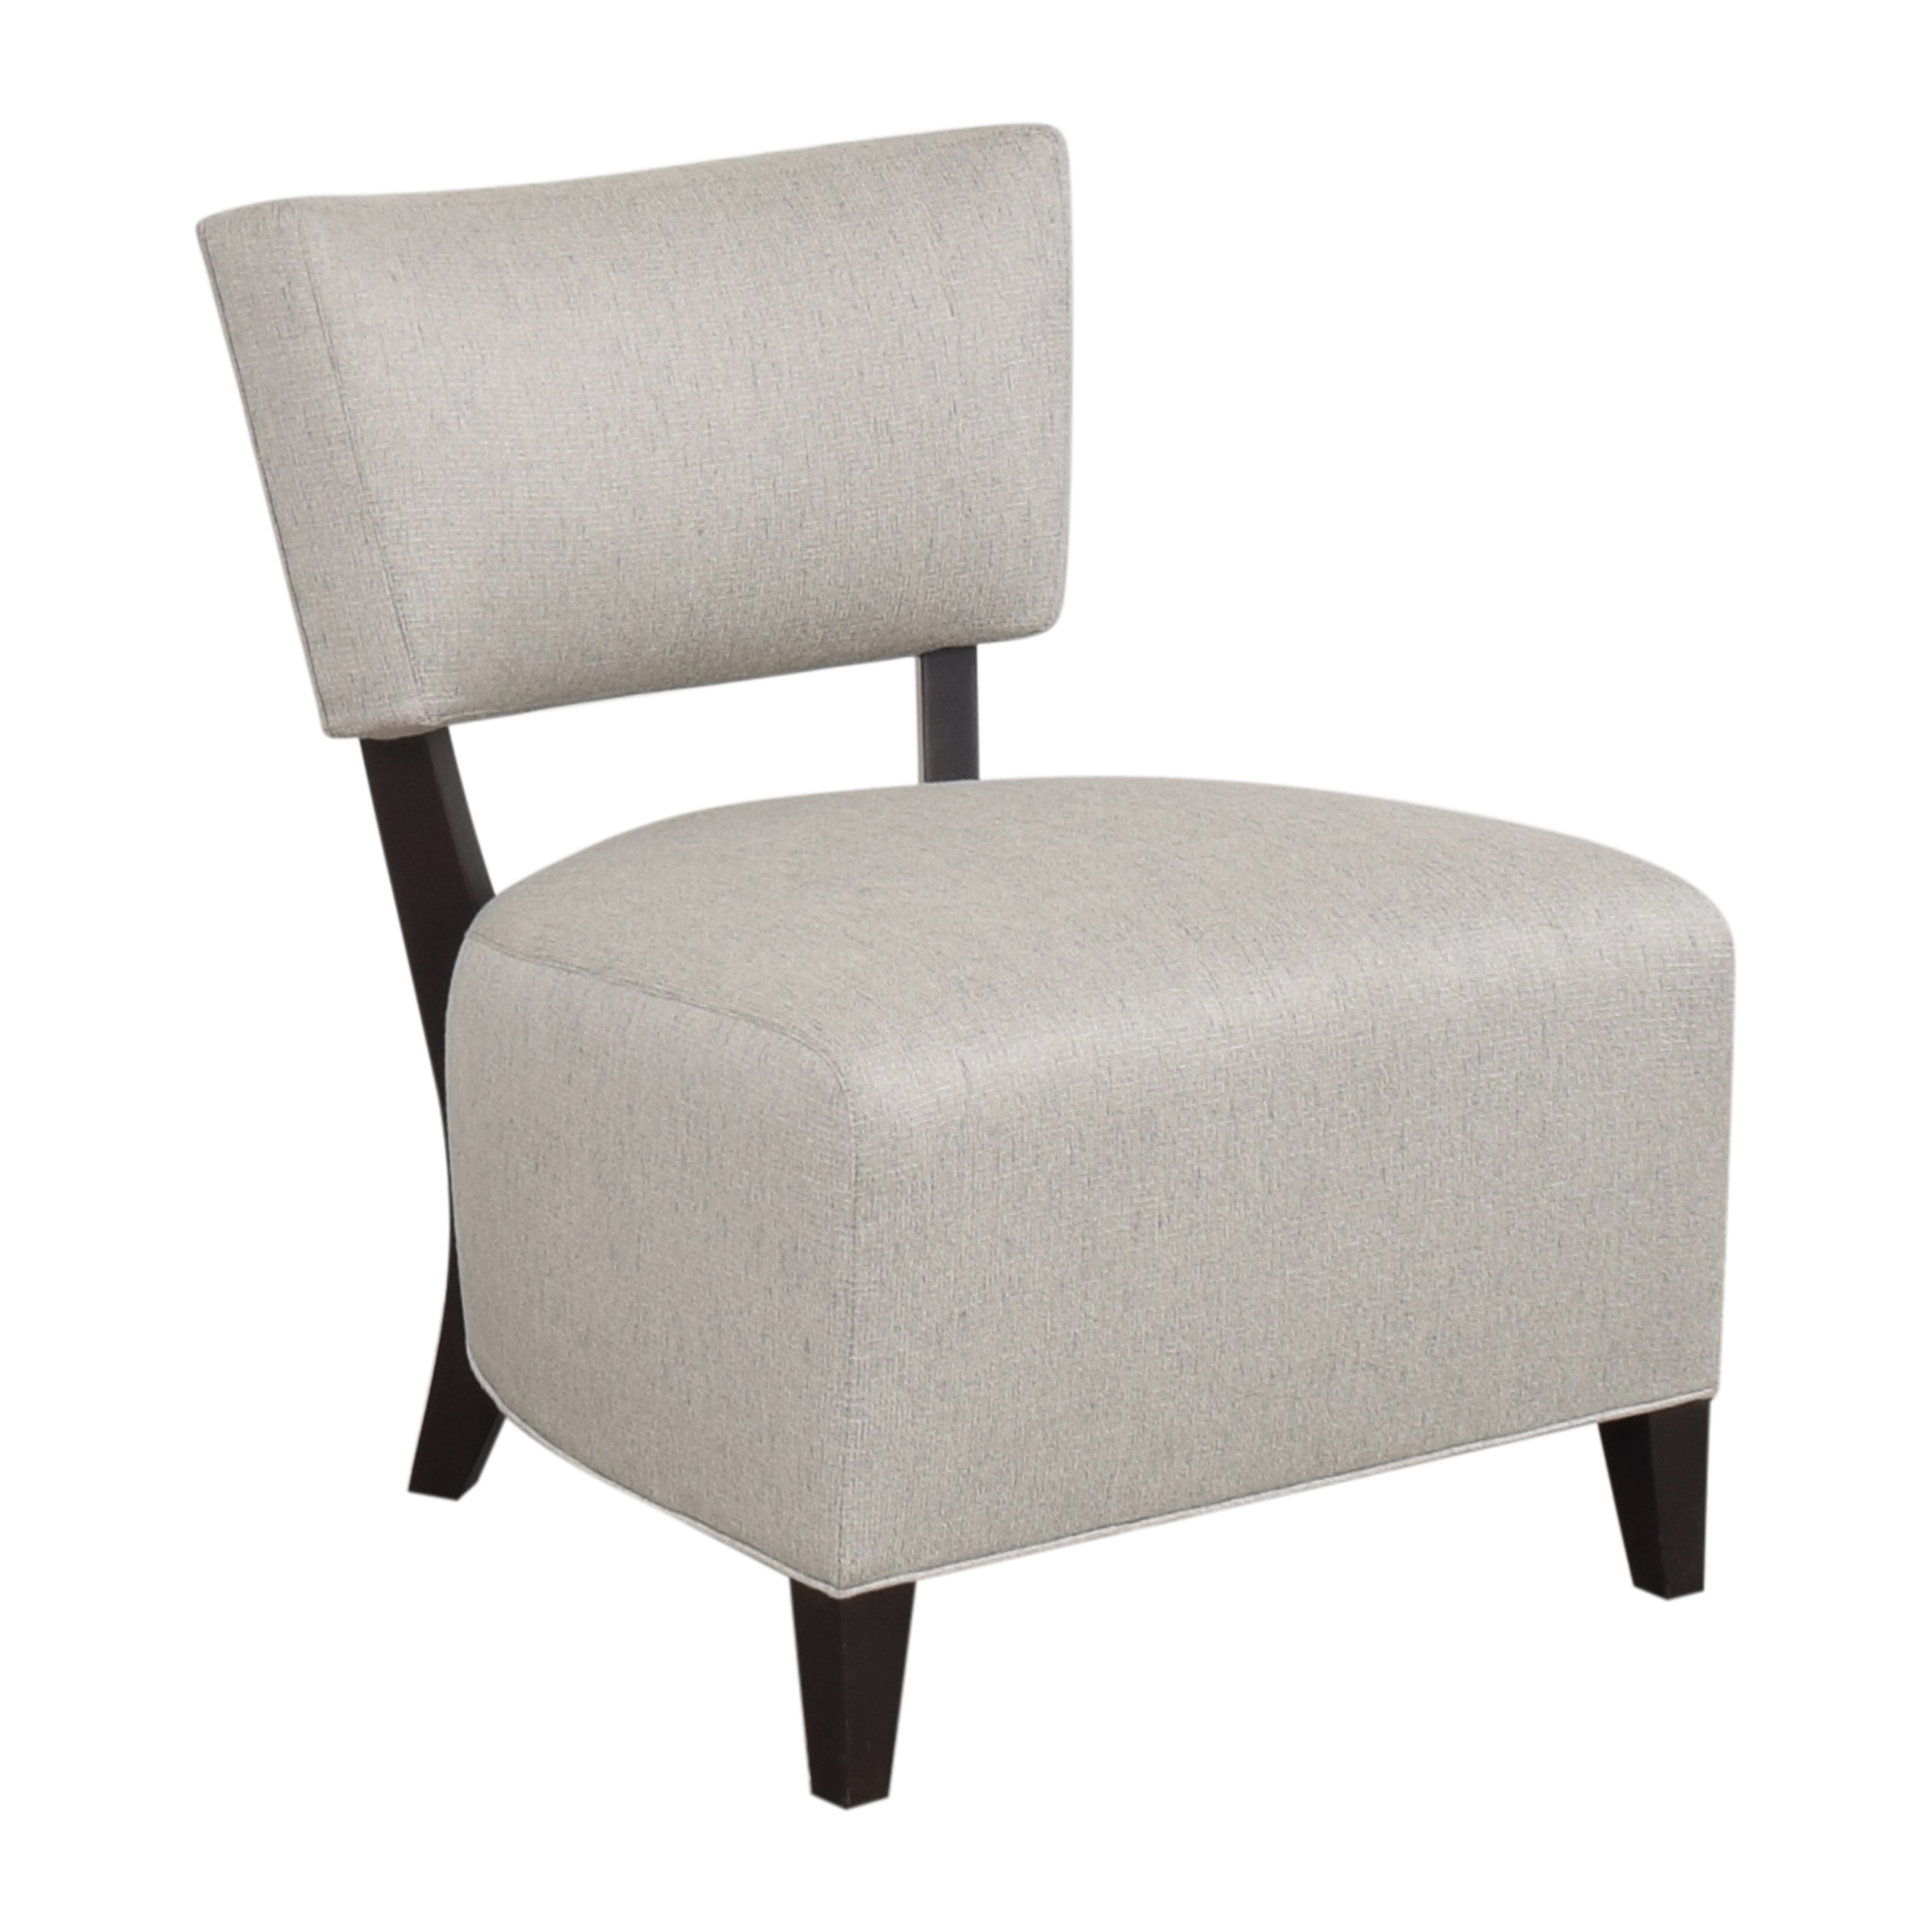 Ethan Allen Armless Accent Chair / Accent Chairs